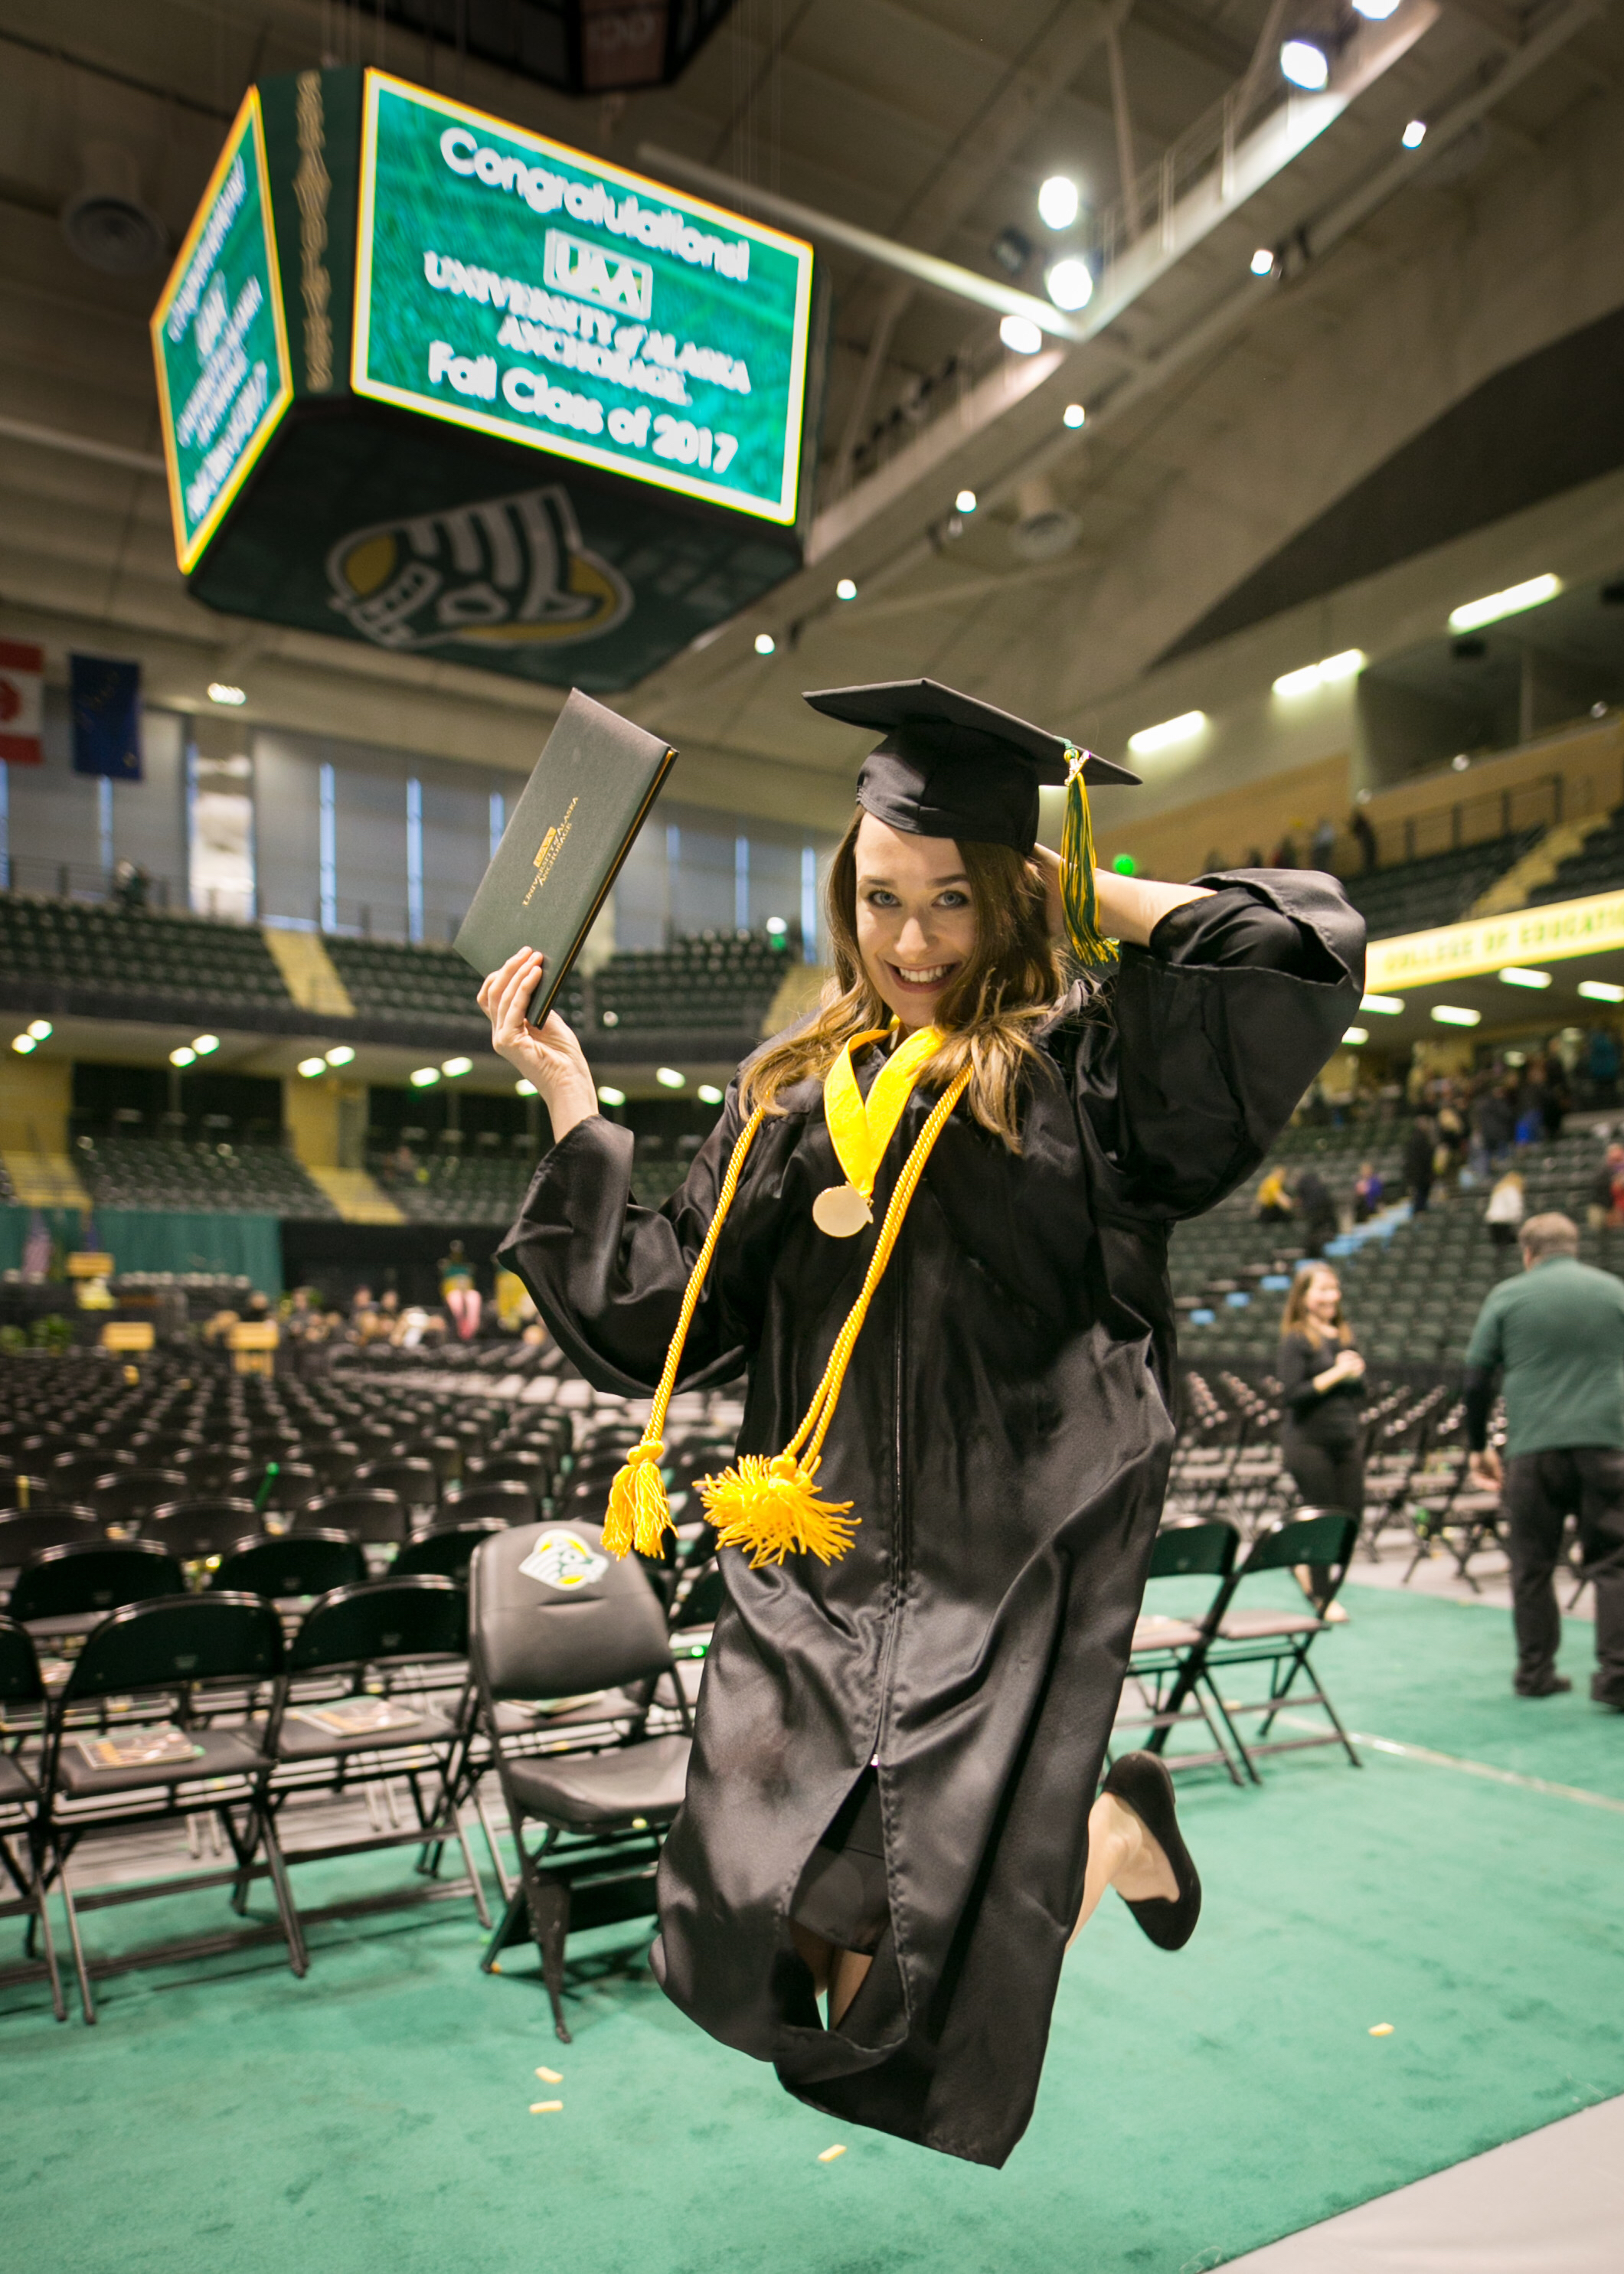 CED Research Assistant, Ciara Zervantian, celebrates her graduation from UAA with a Bachelor of Arts in Psychology and Sociology, December 2017.